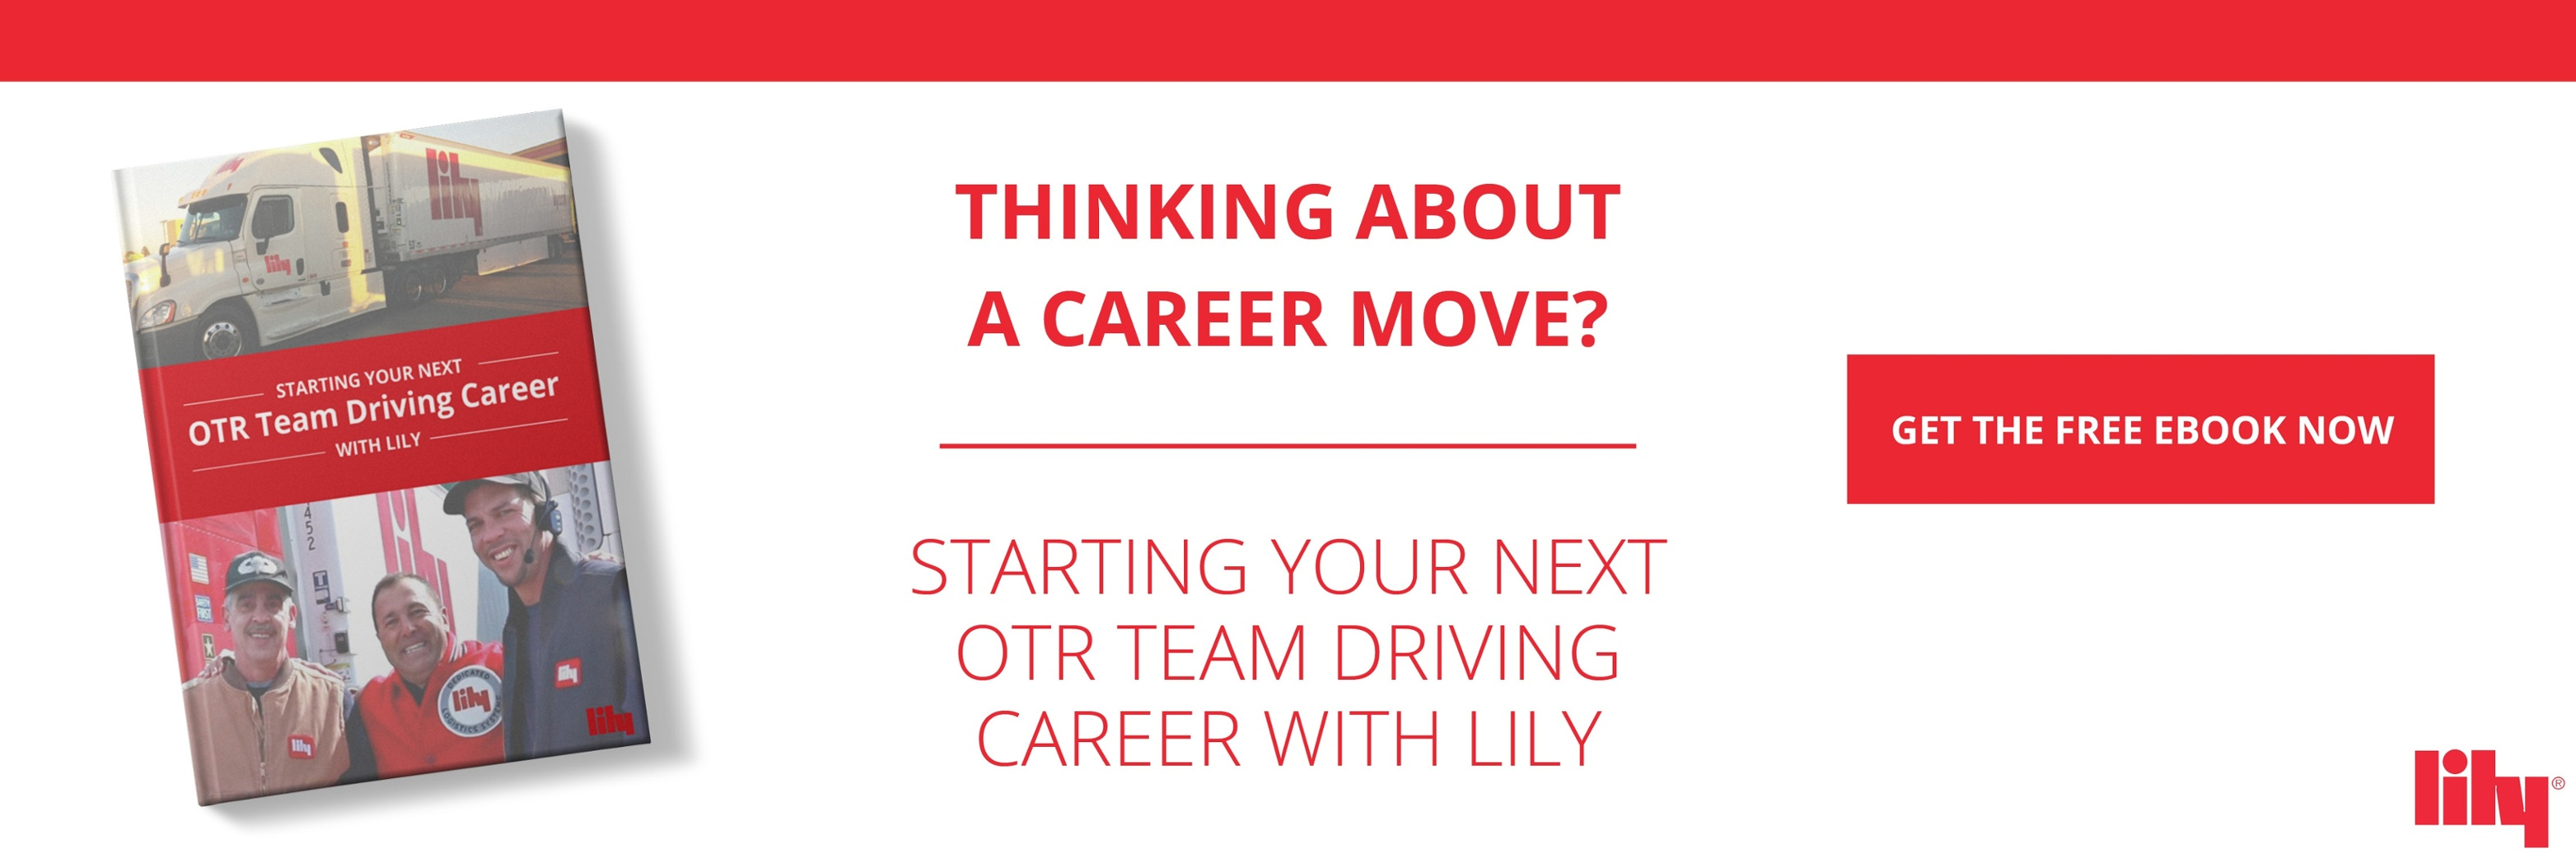 Starting Your Next OTR Team Driving Career with Lily